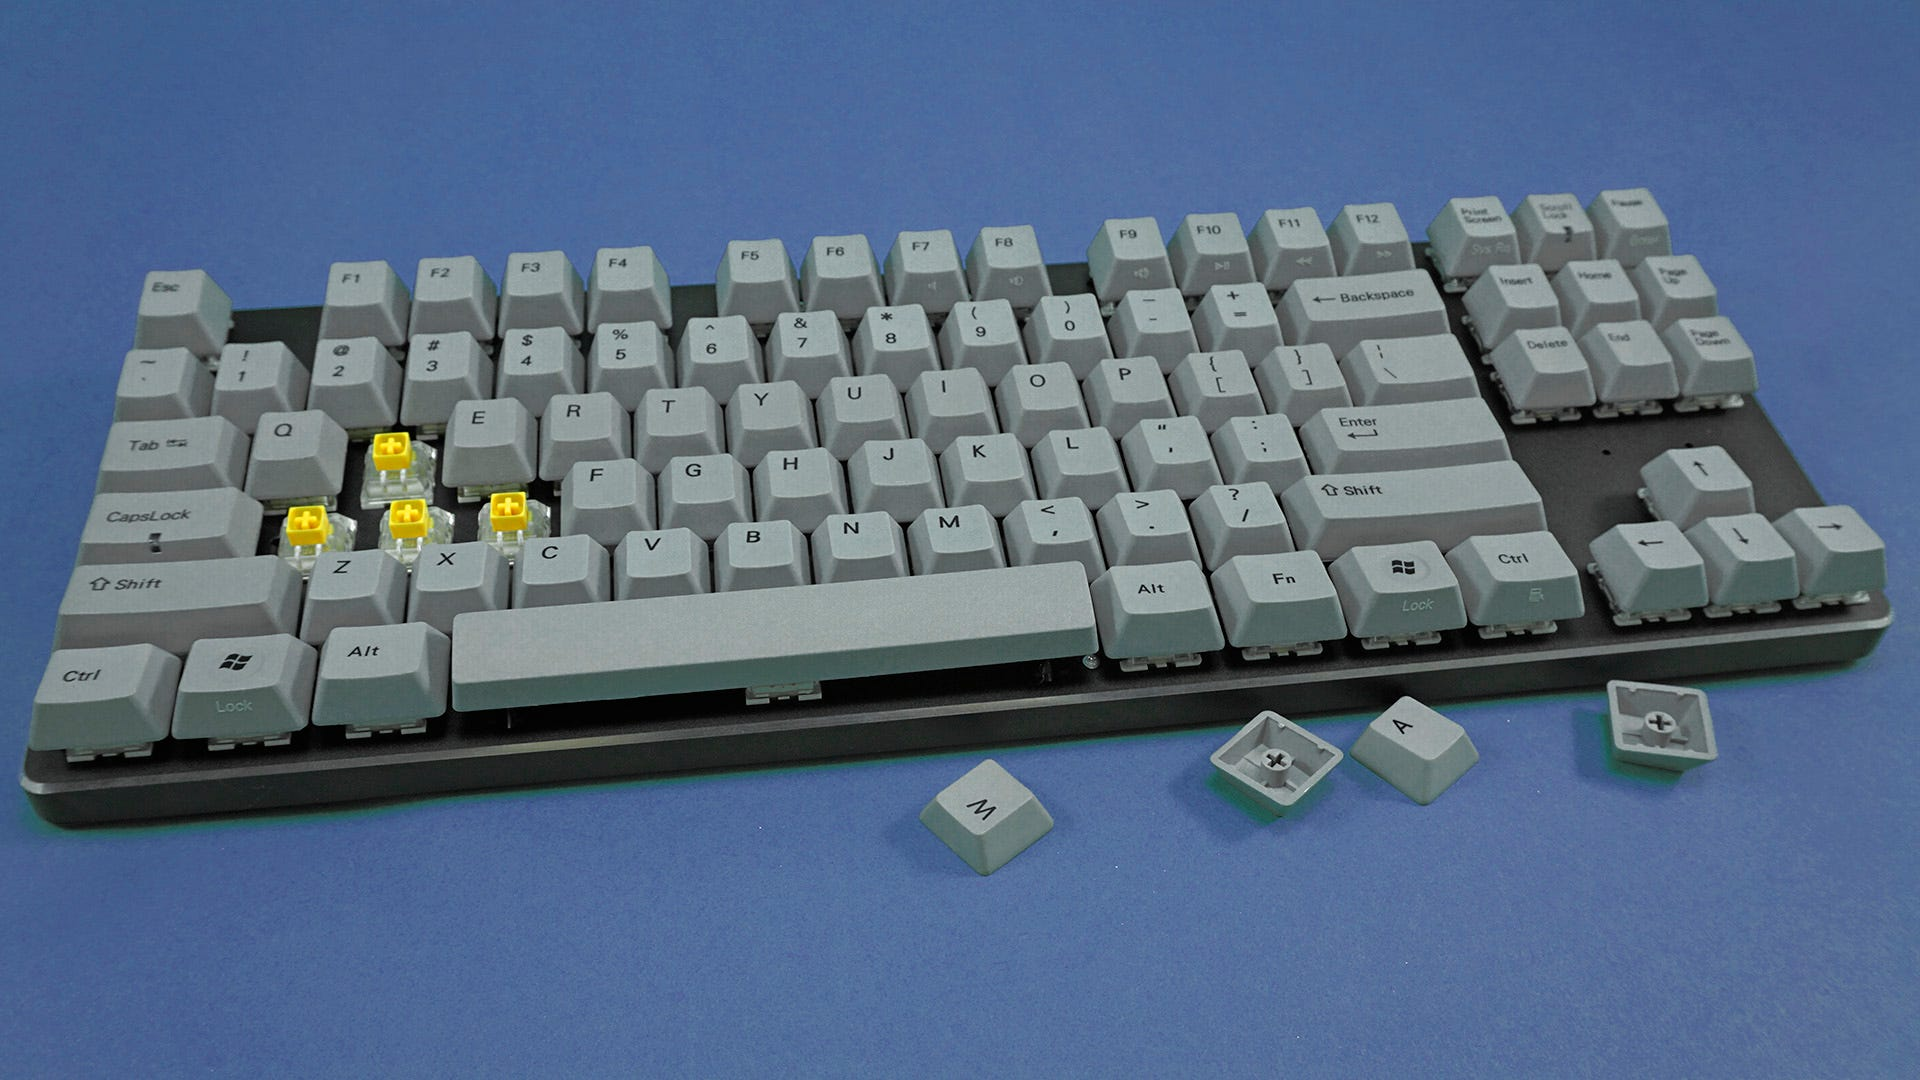 GMMK from the front, with WASD keycaps removed.